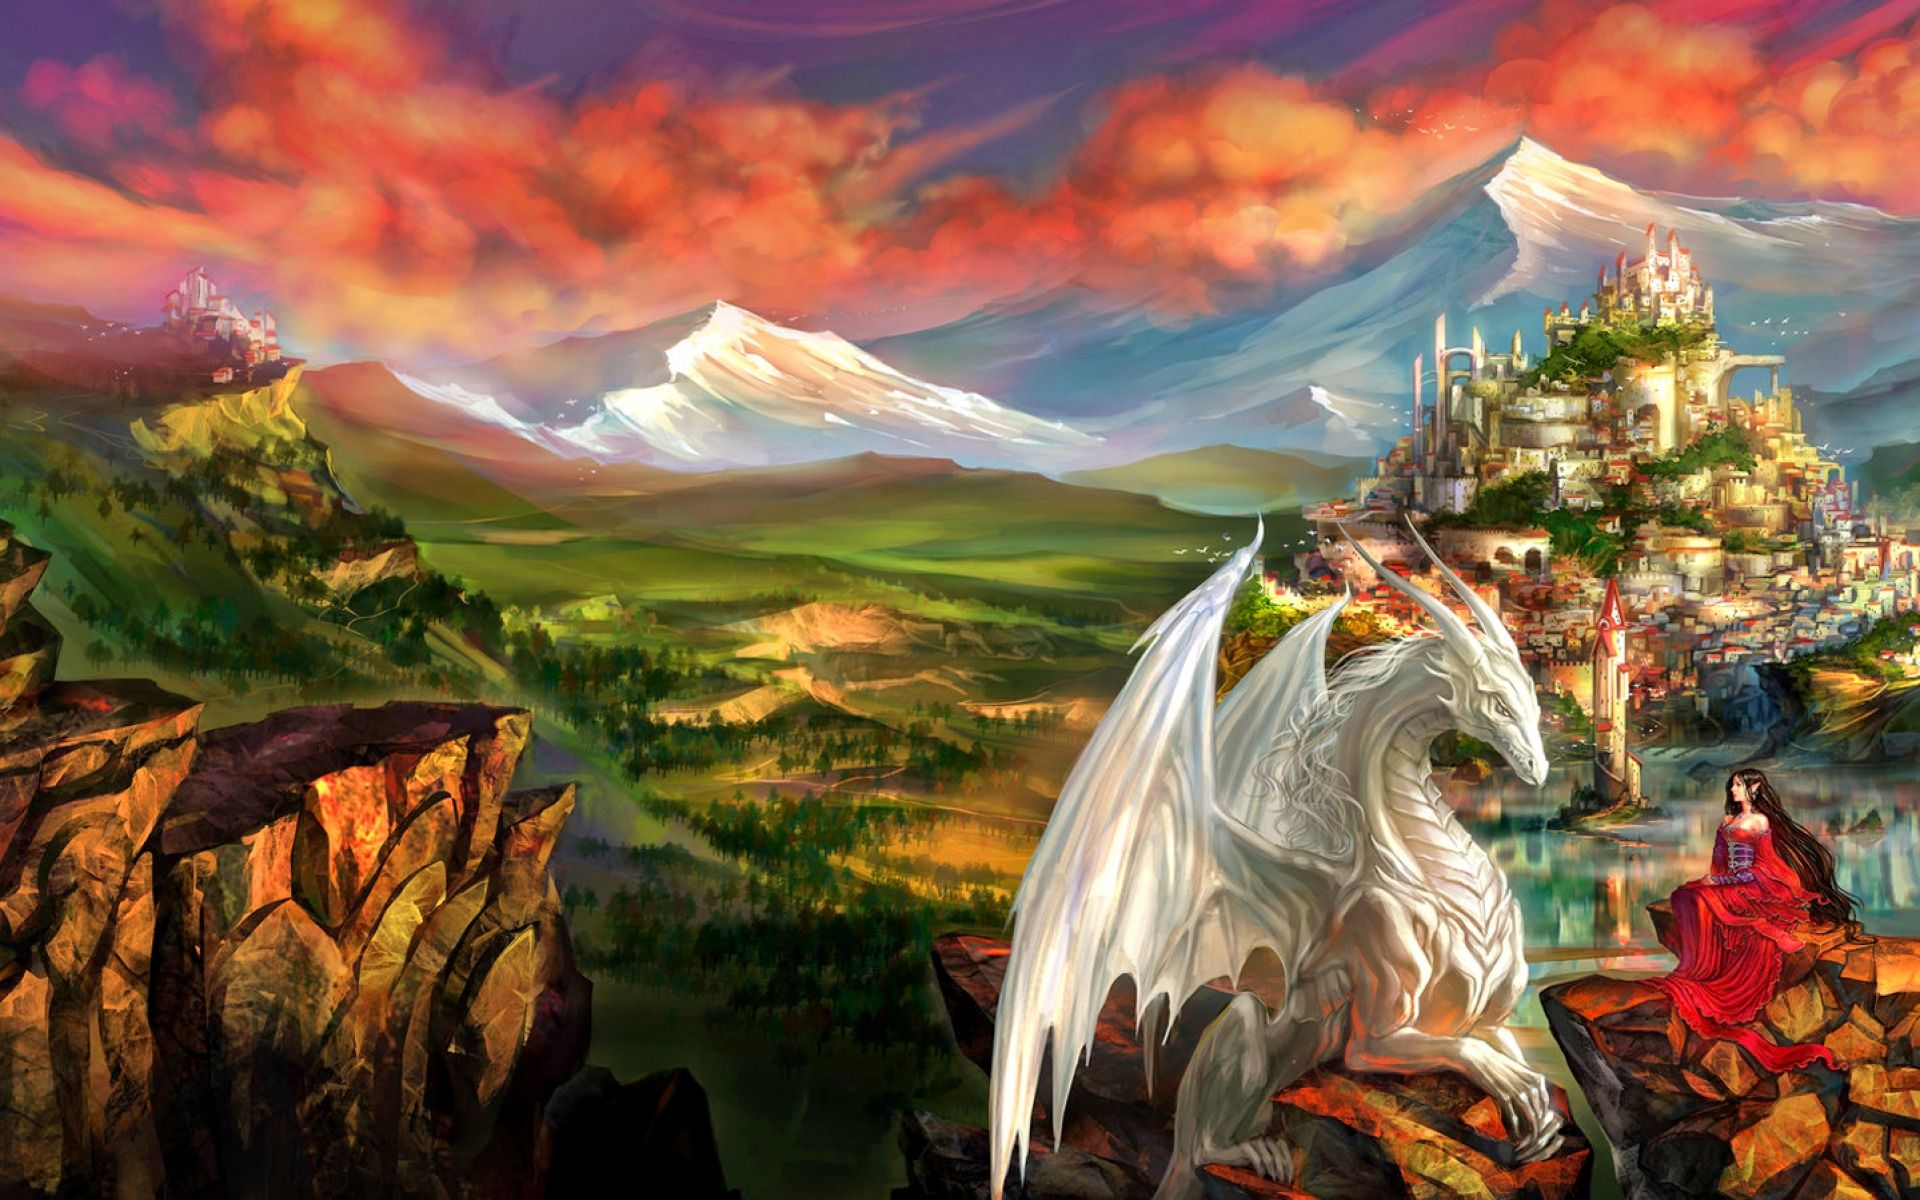 תוצאת תמונה עבור fantasy world | Fanatasy world | Pinterest ... for Fantasy World Art Dragon  585ifm